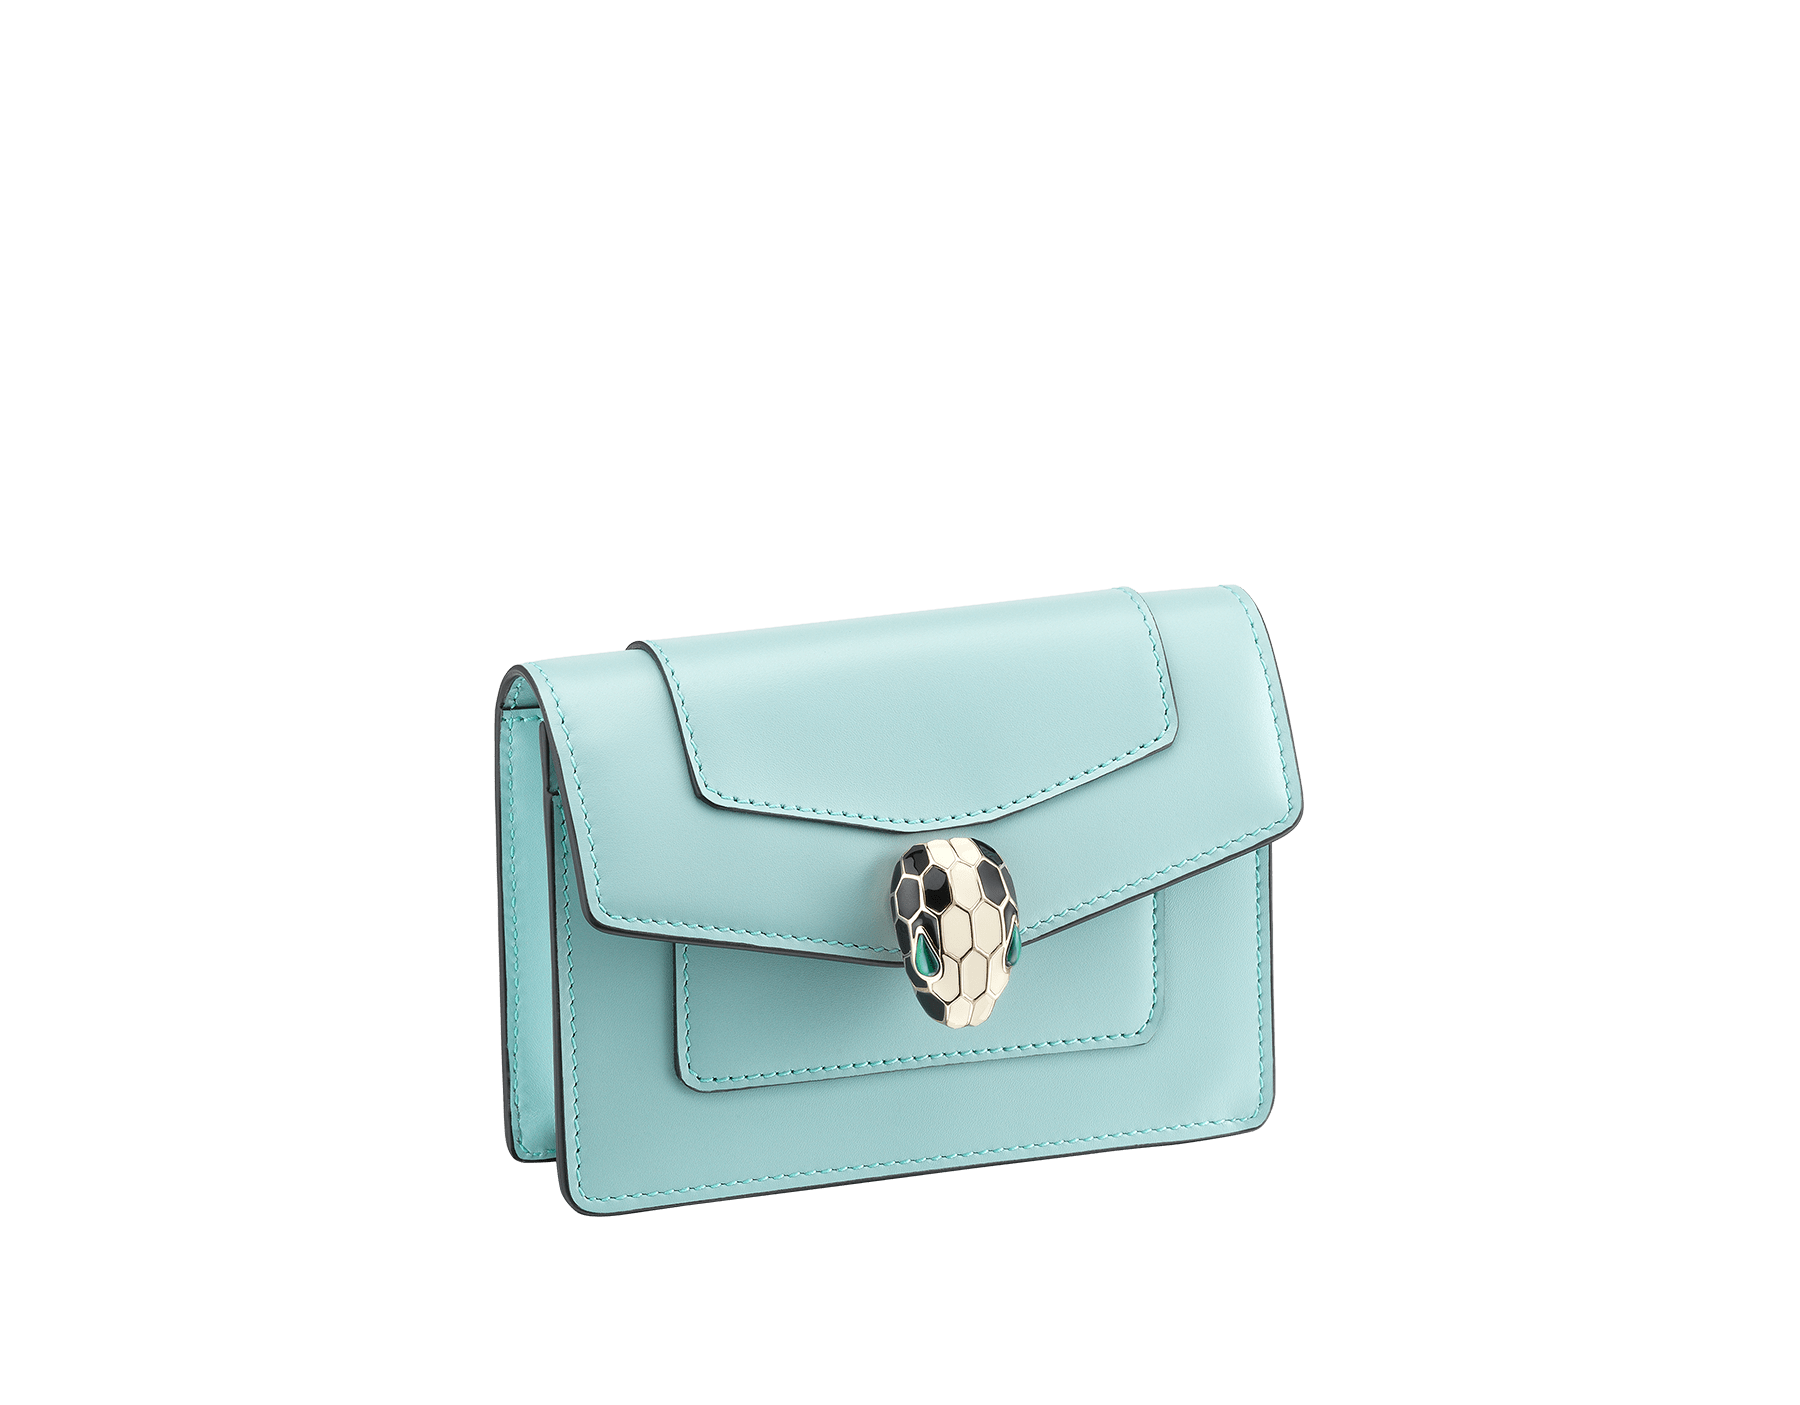 Serpenti Forever pocket credit card holder crafted in glacier turquoise and rhapsody opal calf leather, with glacier turquoise nappa lining. Iconic brass light gold plated snakehead stud closure in black and white enamel, with eyes in green malachite. 287174 image 1